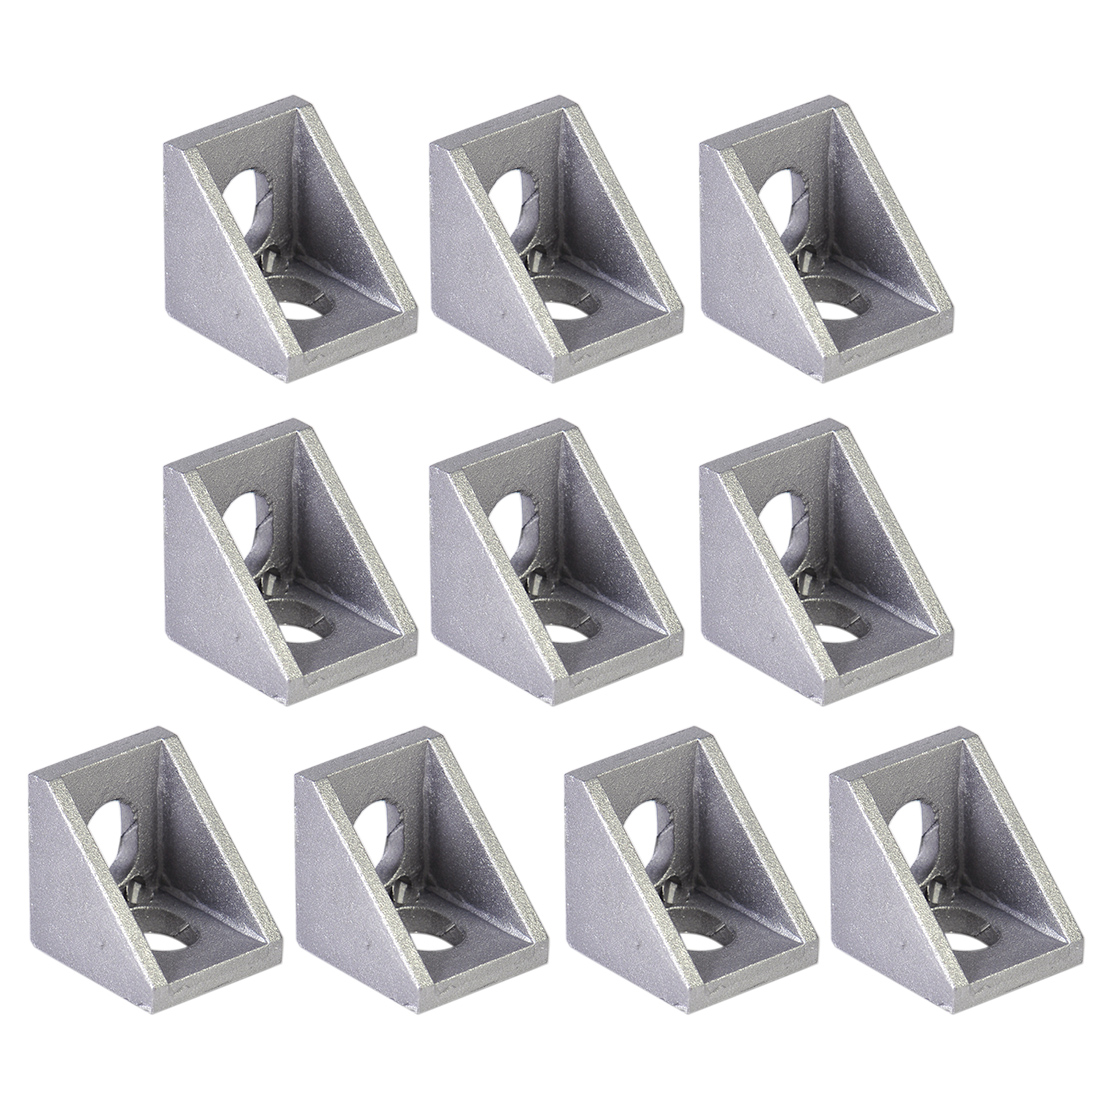 10Pcs Grey Aluminum Bracket 90 Degree Double Side L Shape Corner Joint Brace Right Angle ned 10pcs 65x65x20mm practical stainless steel corner brackets joint fastening right angle 2 5mm thickened bracket for furniture